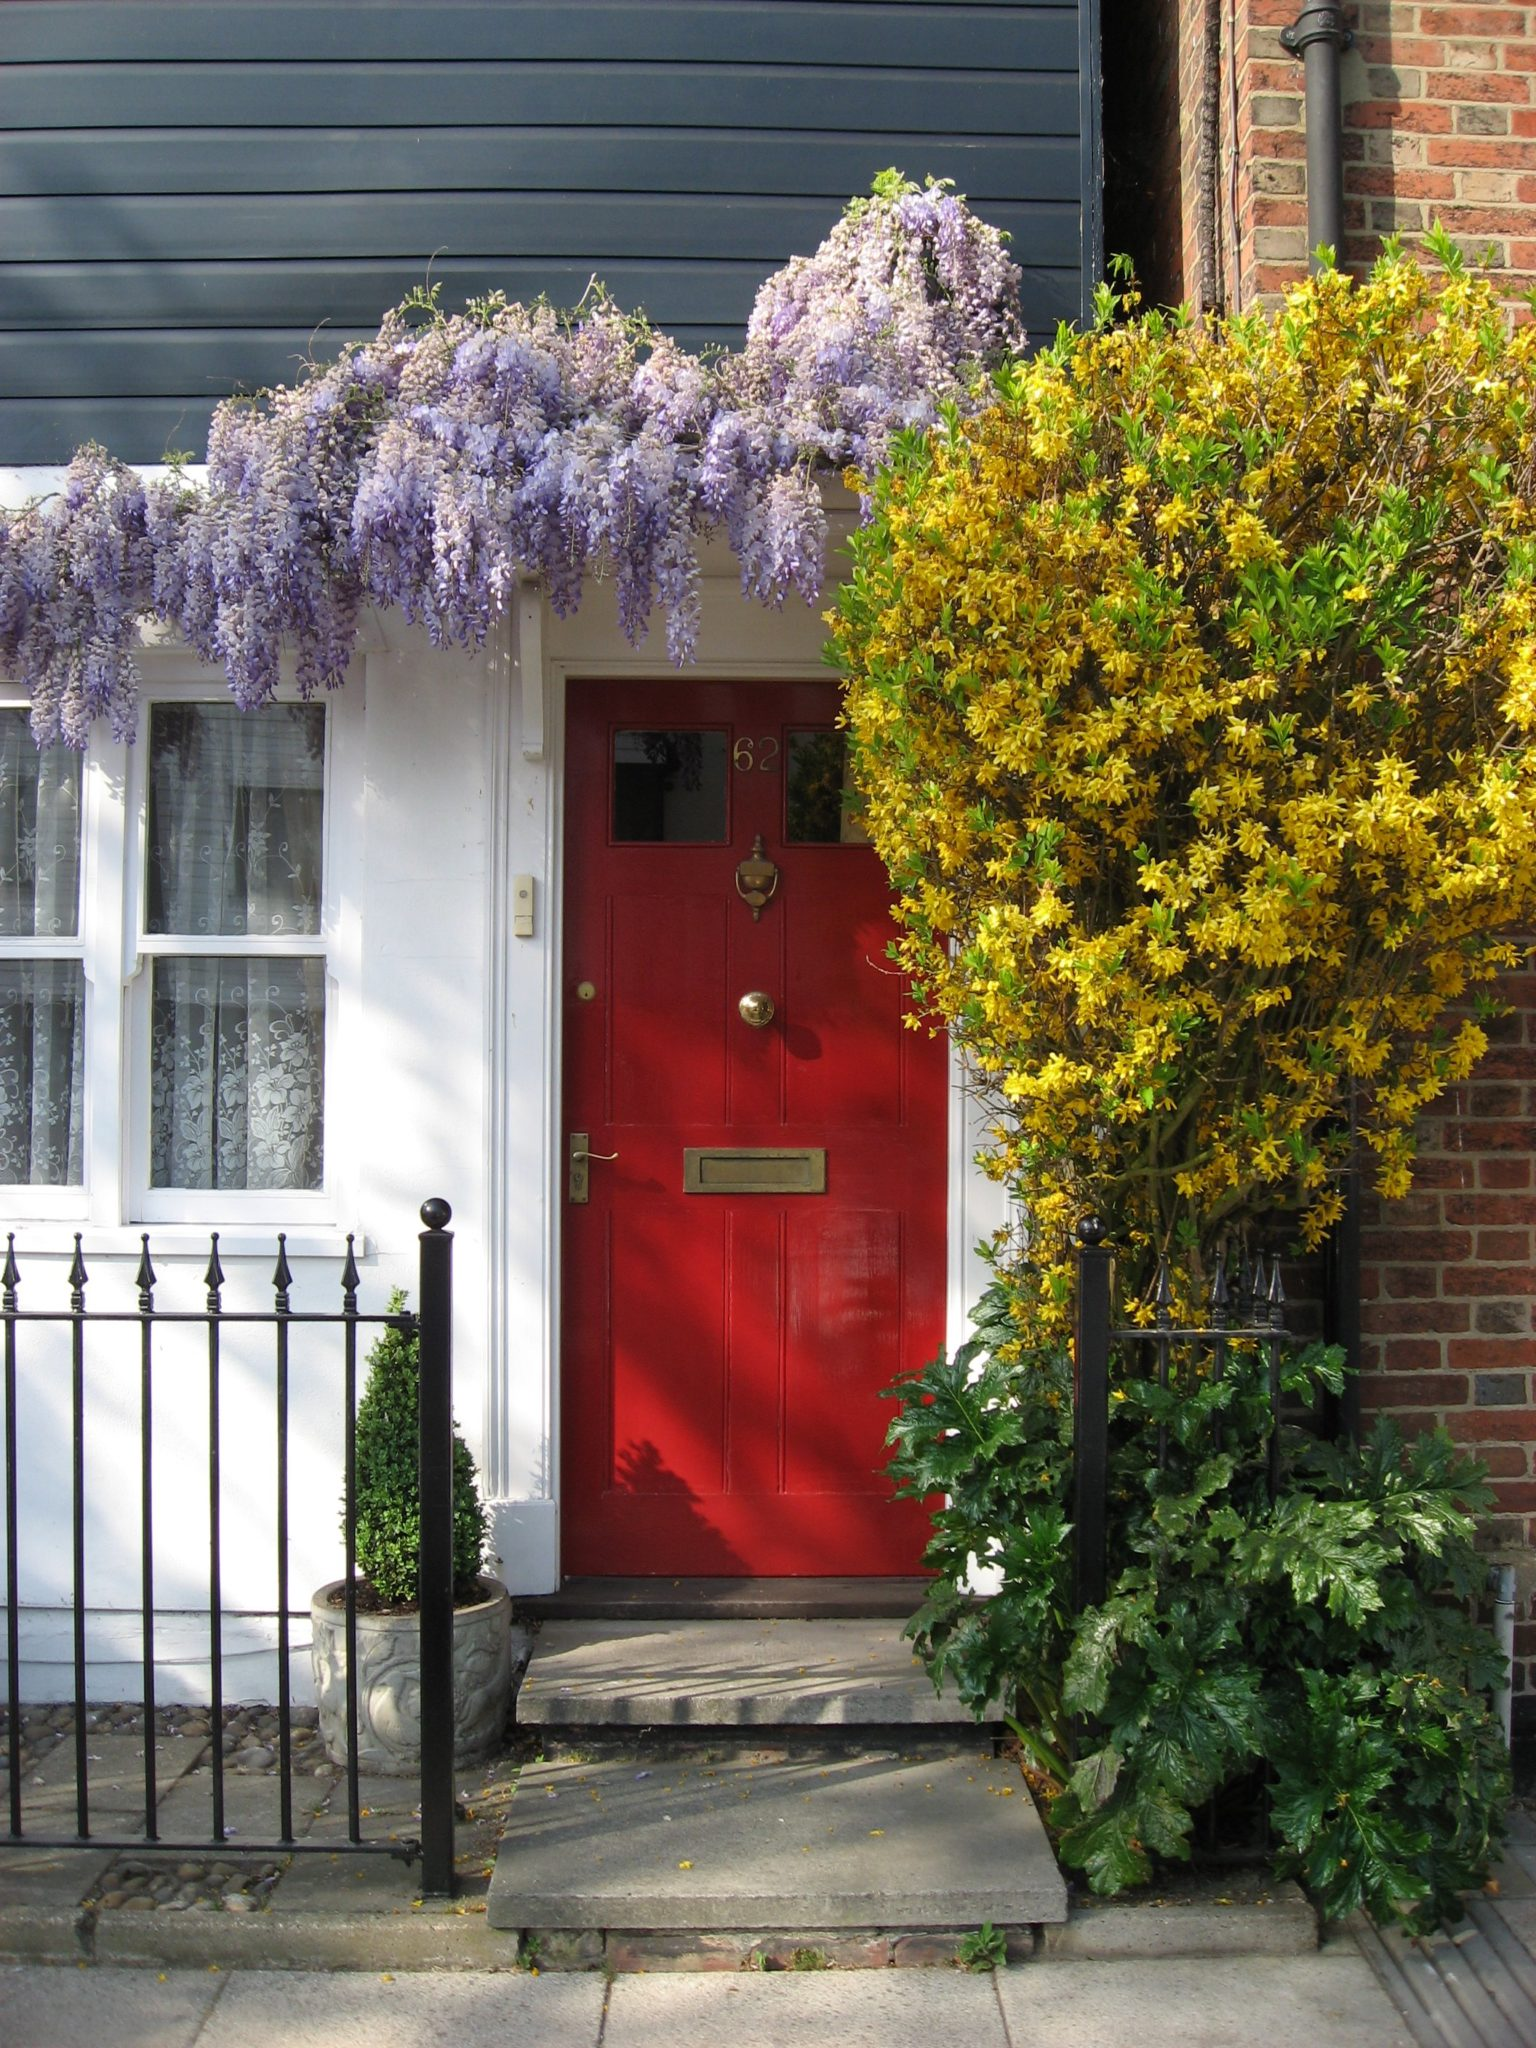 Red door surrounded by blooming lilac and yellow florals